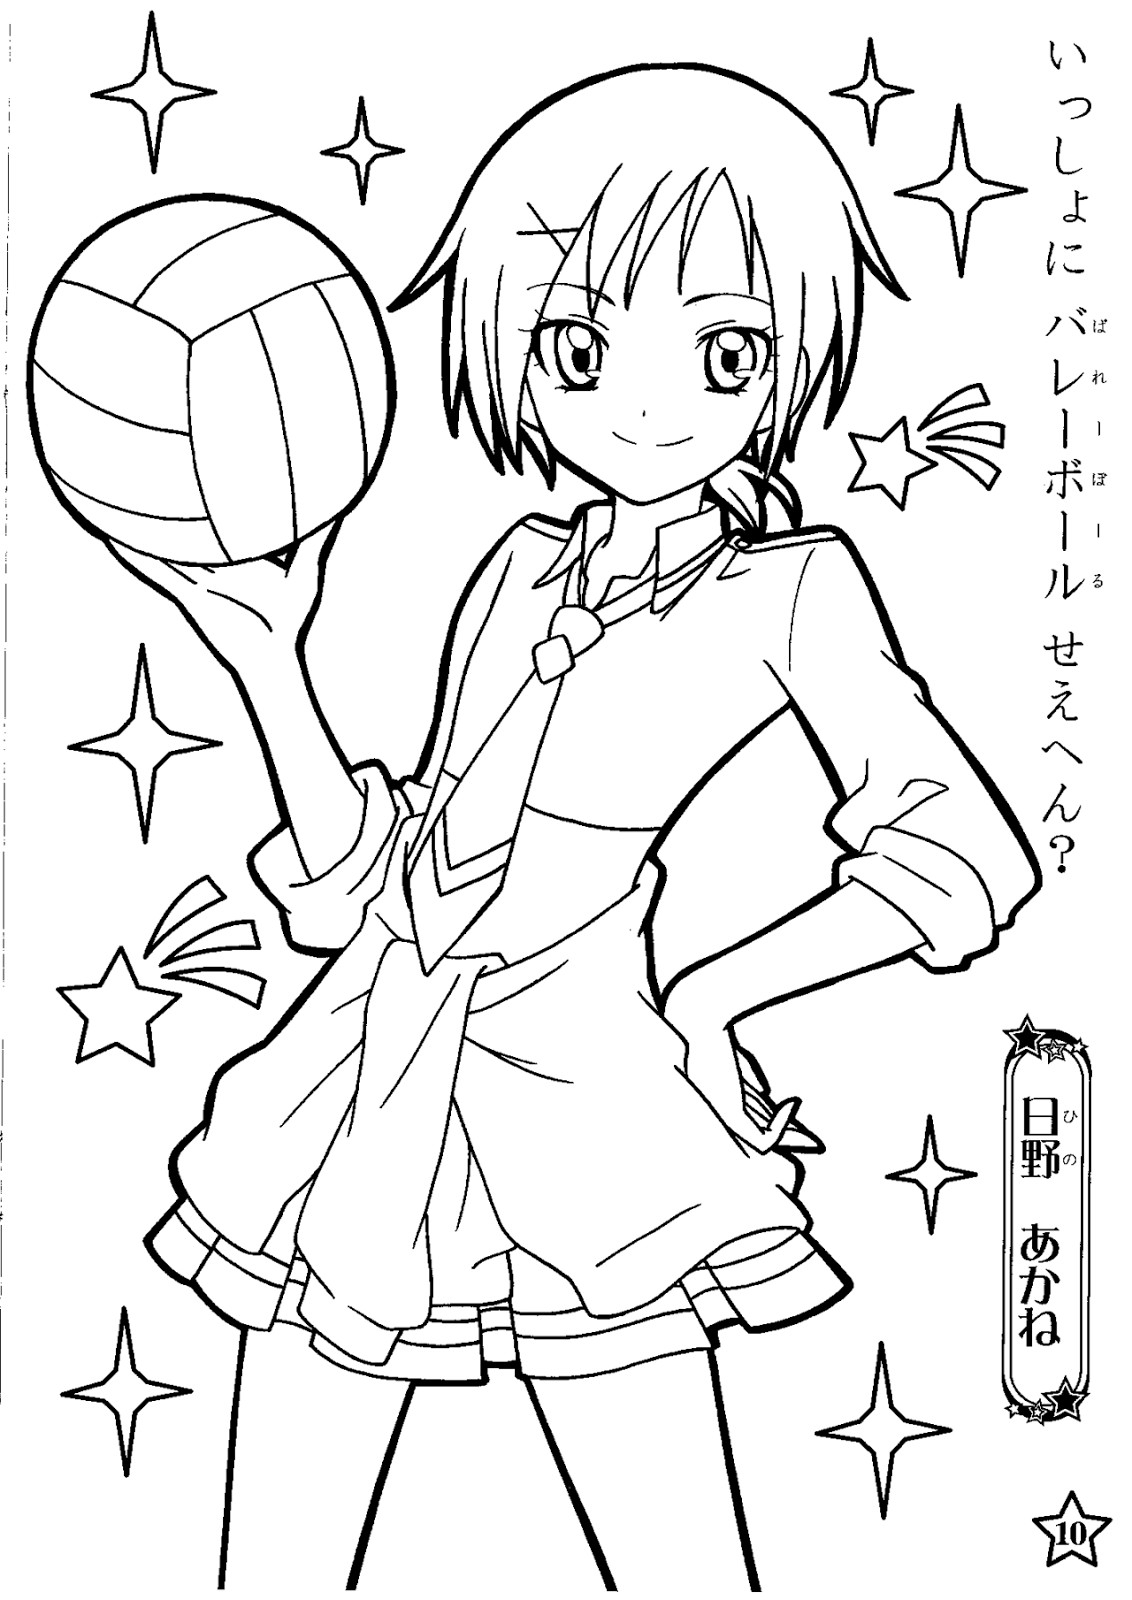 Glitter Force Coloring Pages Inspirational Of Glitter Force Coloring Pages Stock Pretty Cure